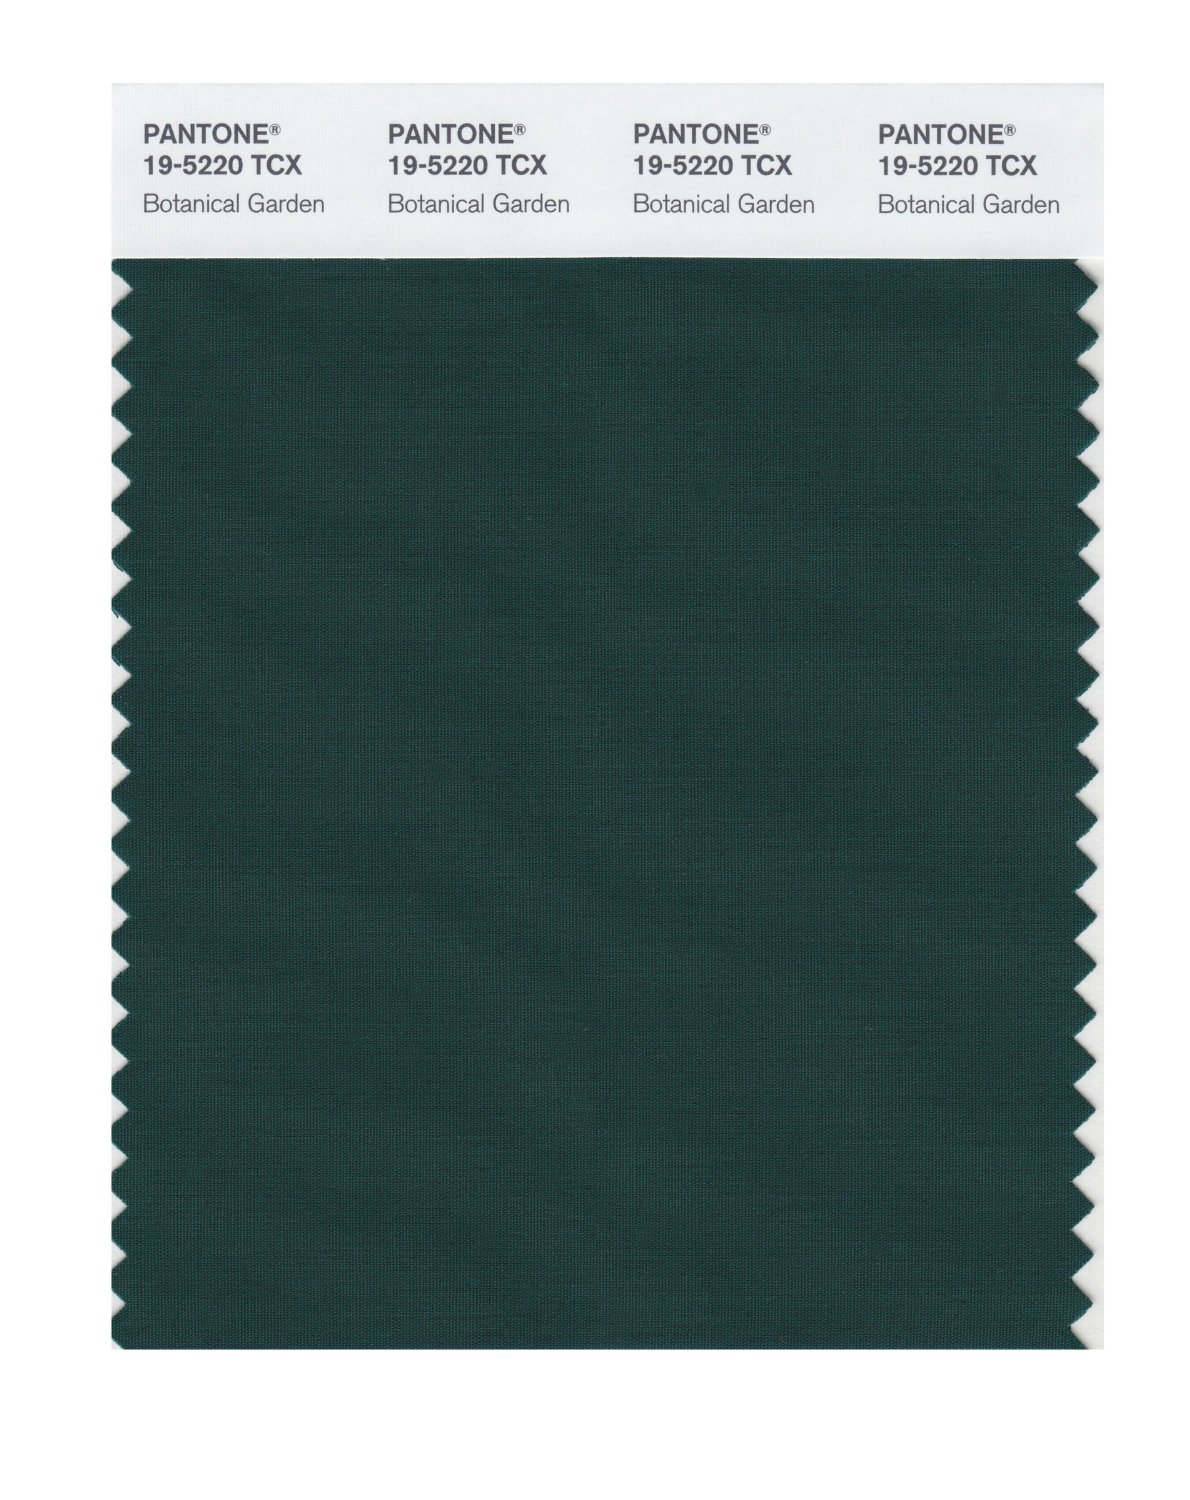 Pantone Smart Swatch 19-5220 Botanical Garden